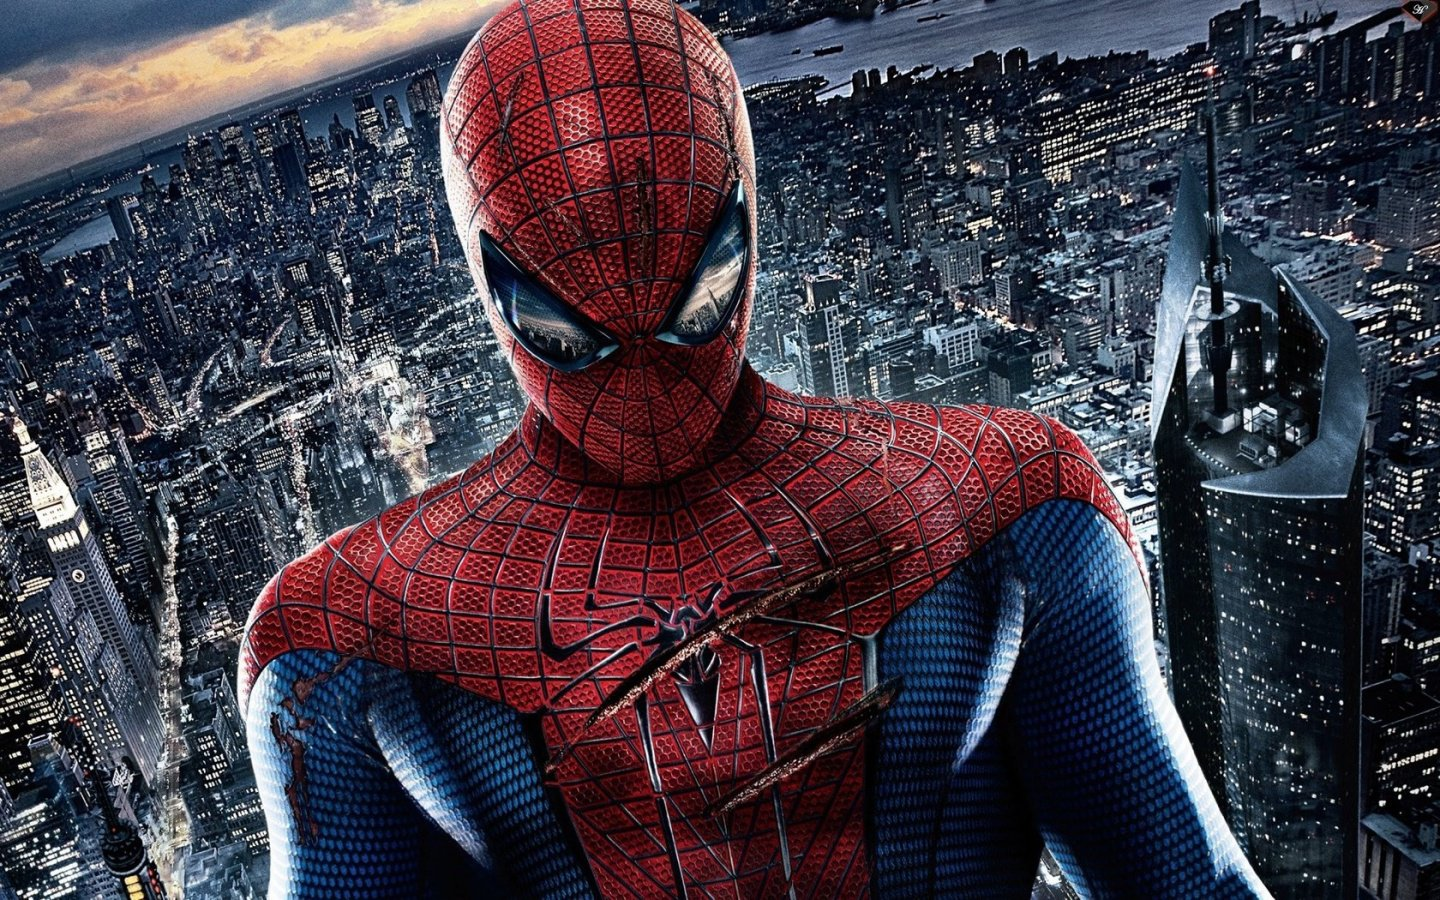 Spider Man HD Wallpaper Slwallpapers 1440x900